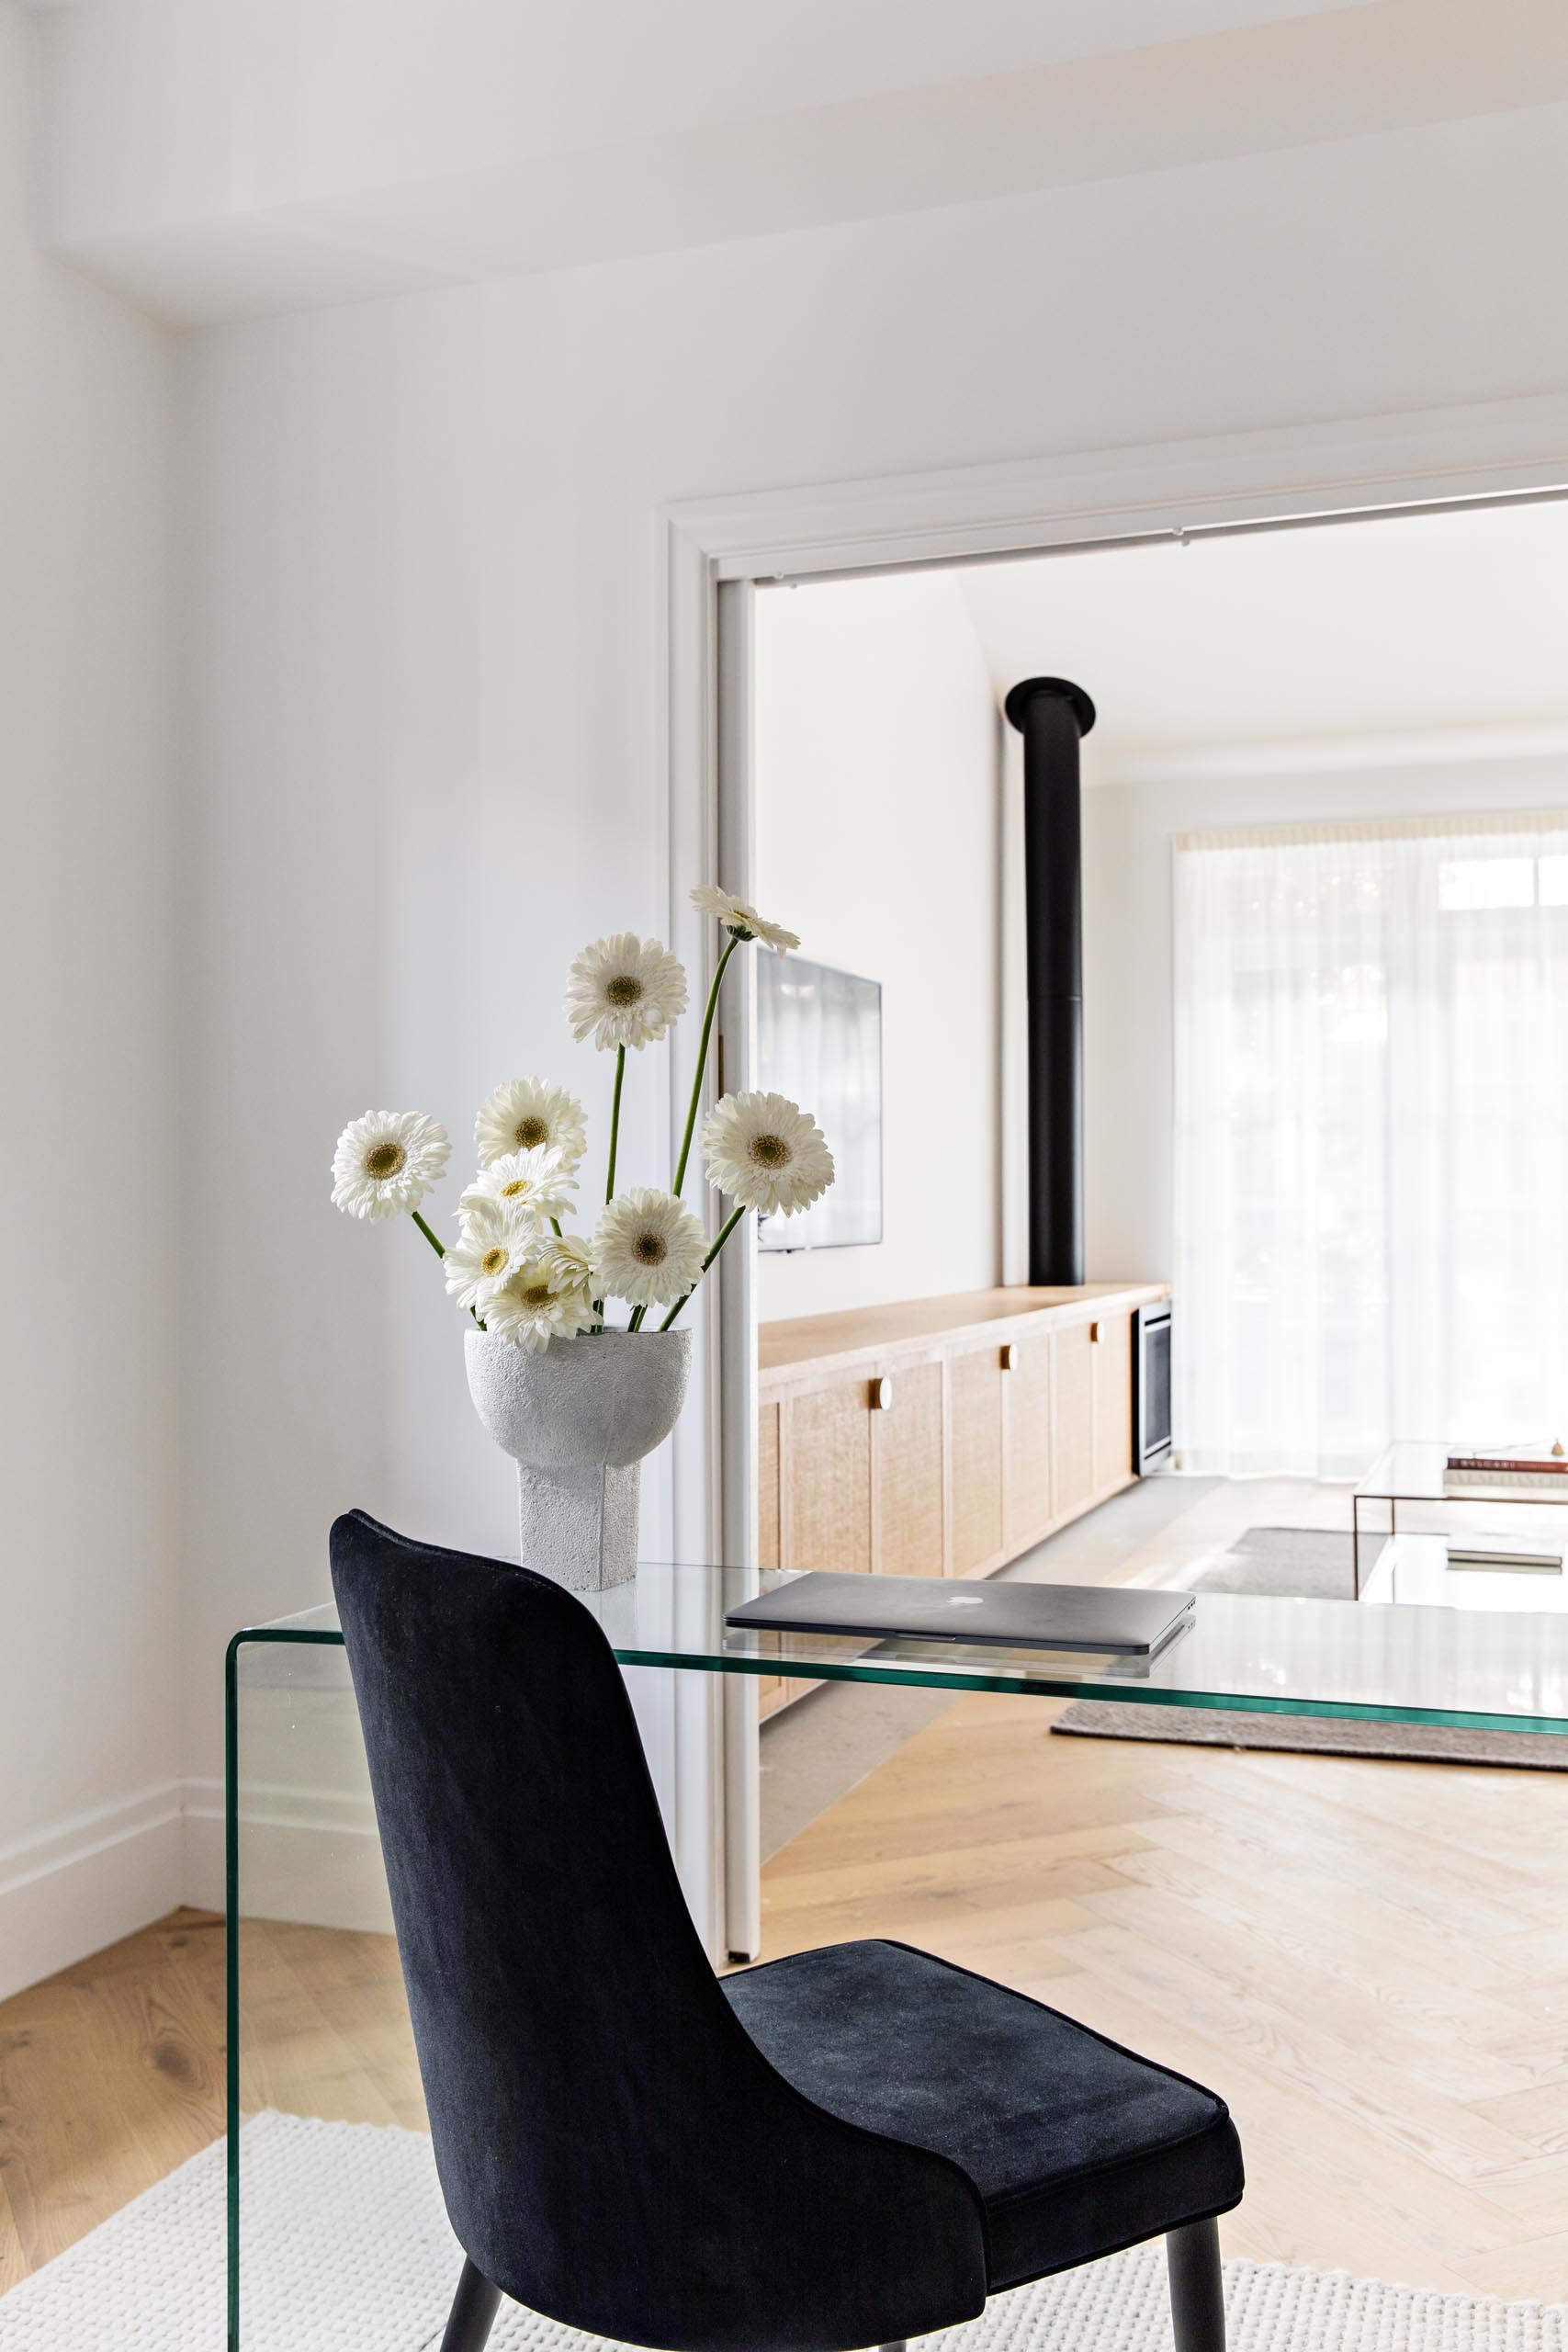 A modern home office with a glass desk, and an black upholstered chair.